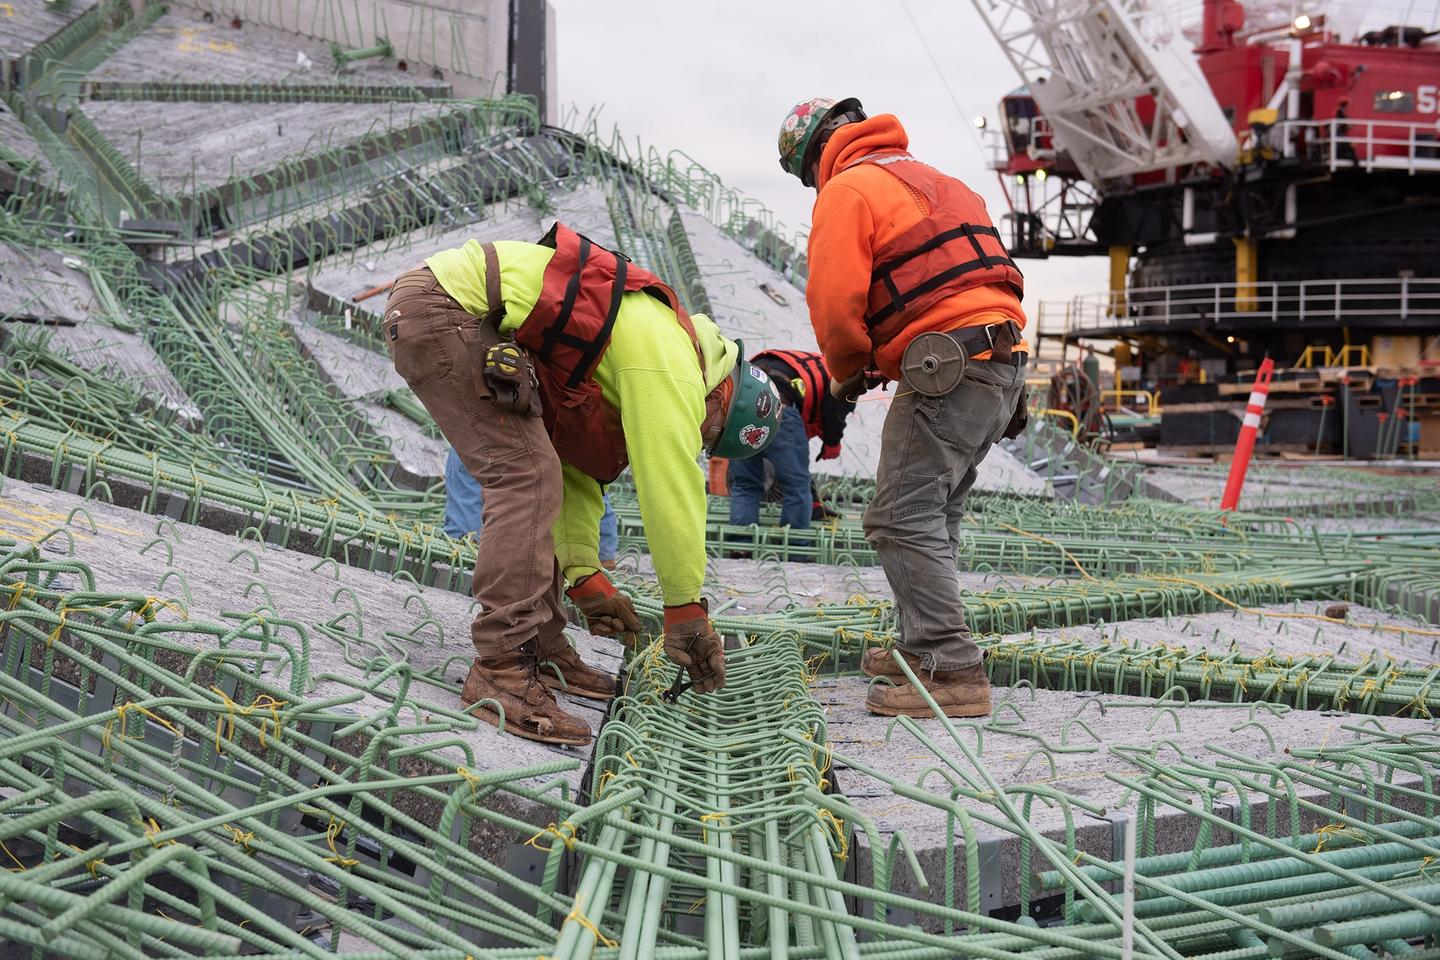 Construction workers securing rebar on the ground.